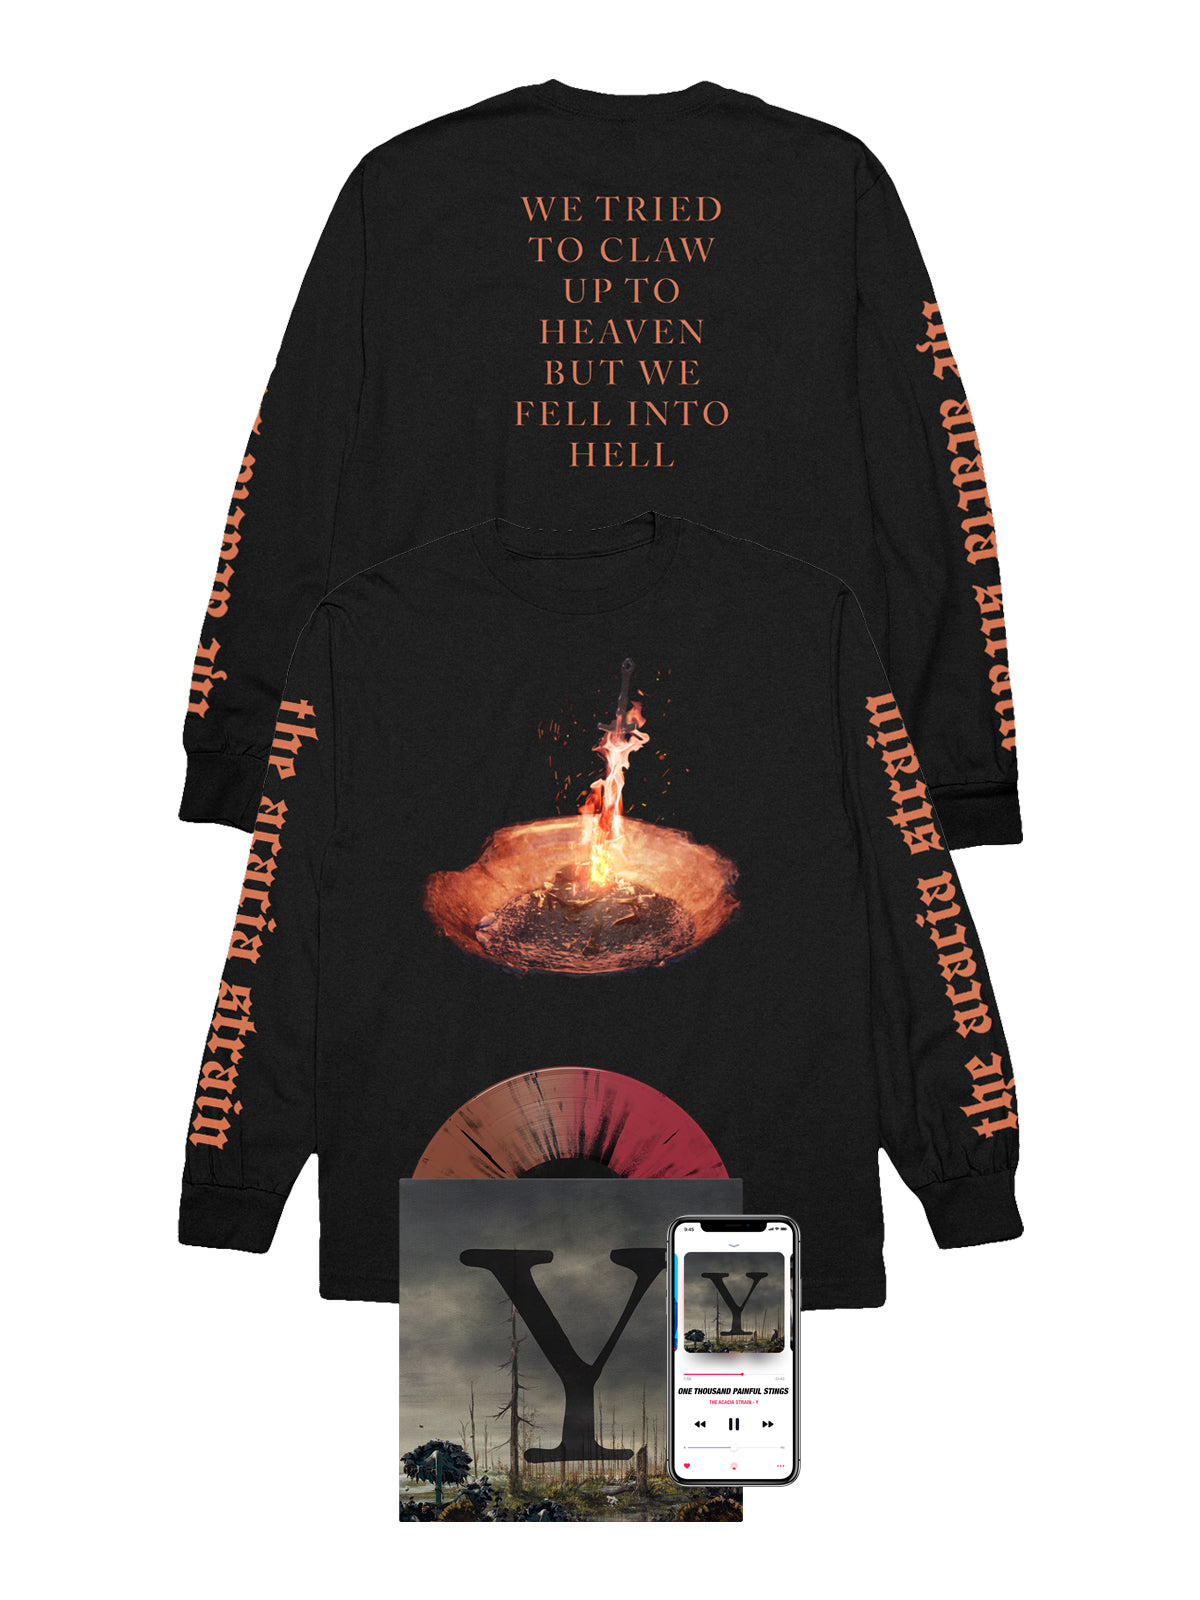 The Acacia Strain - Y Longsleeve Bundle - SHIPS AUGUST 10